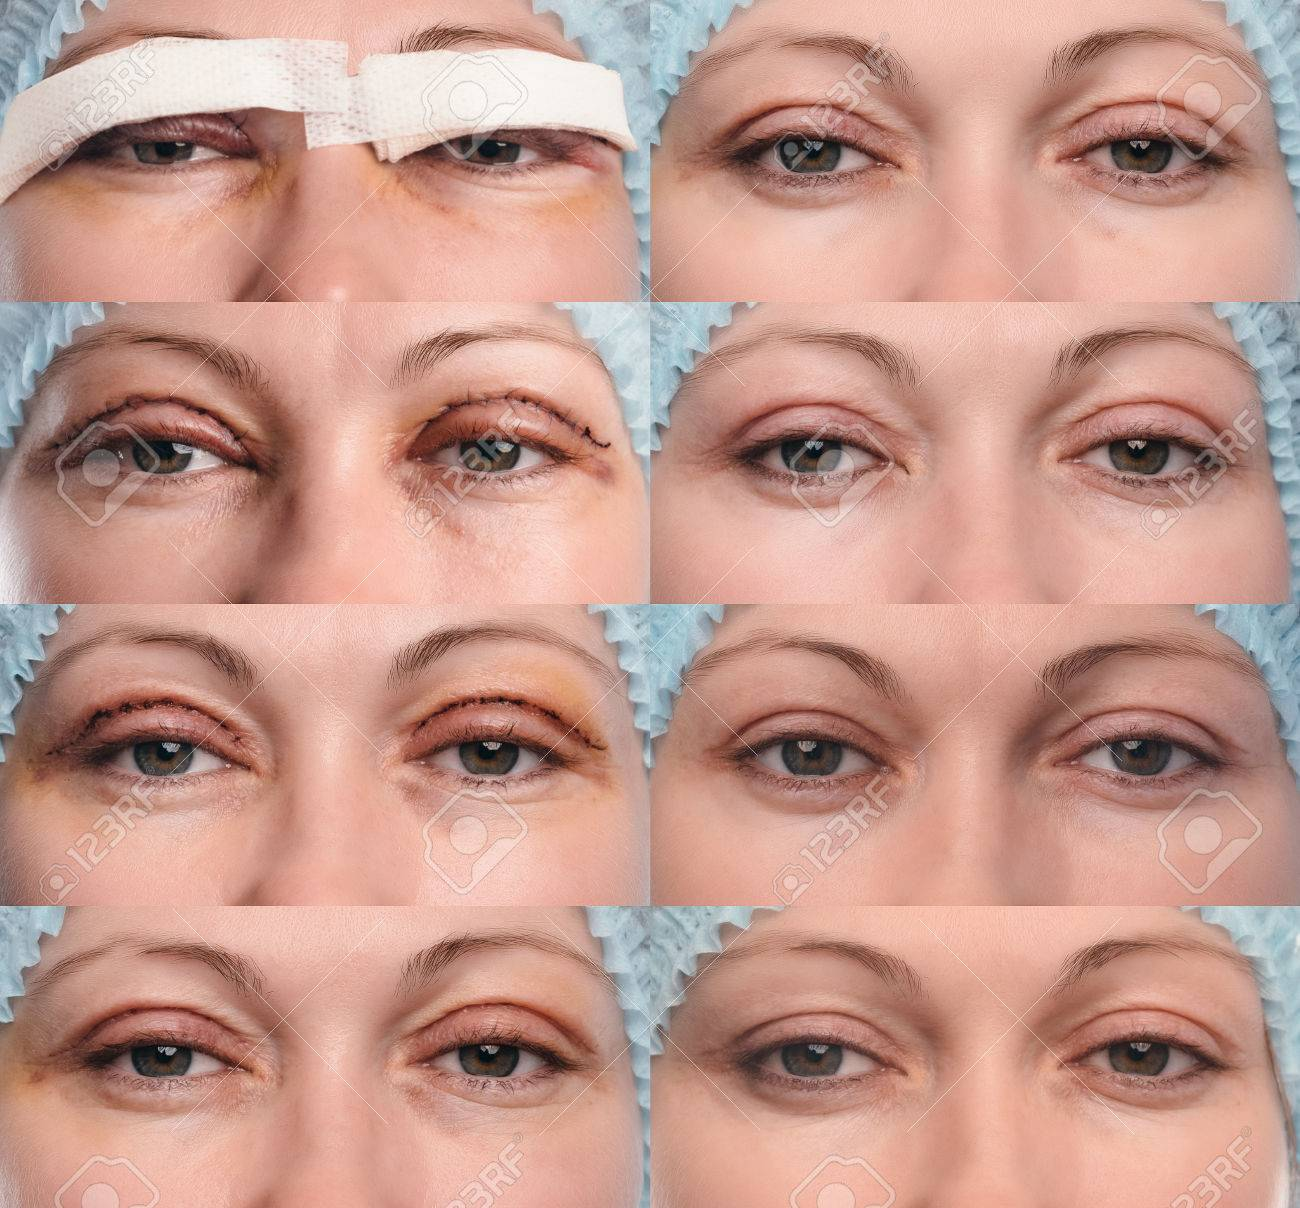 Blepharoplasty day by day photos 3D Ultrasound See What Your Baby Looks Like - Huggies